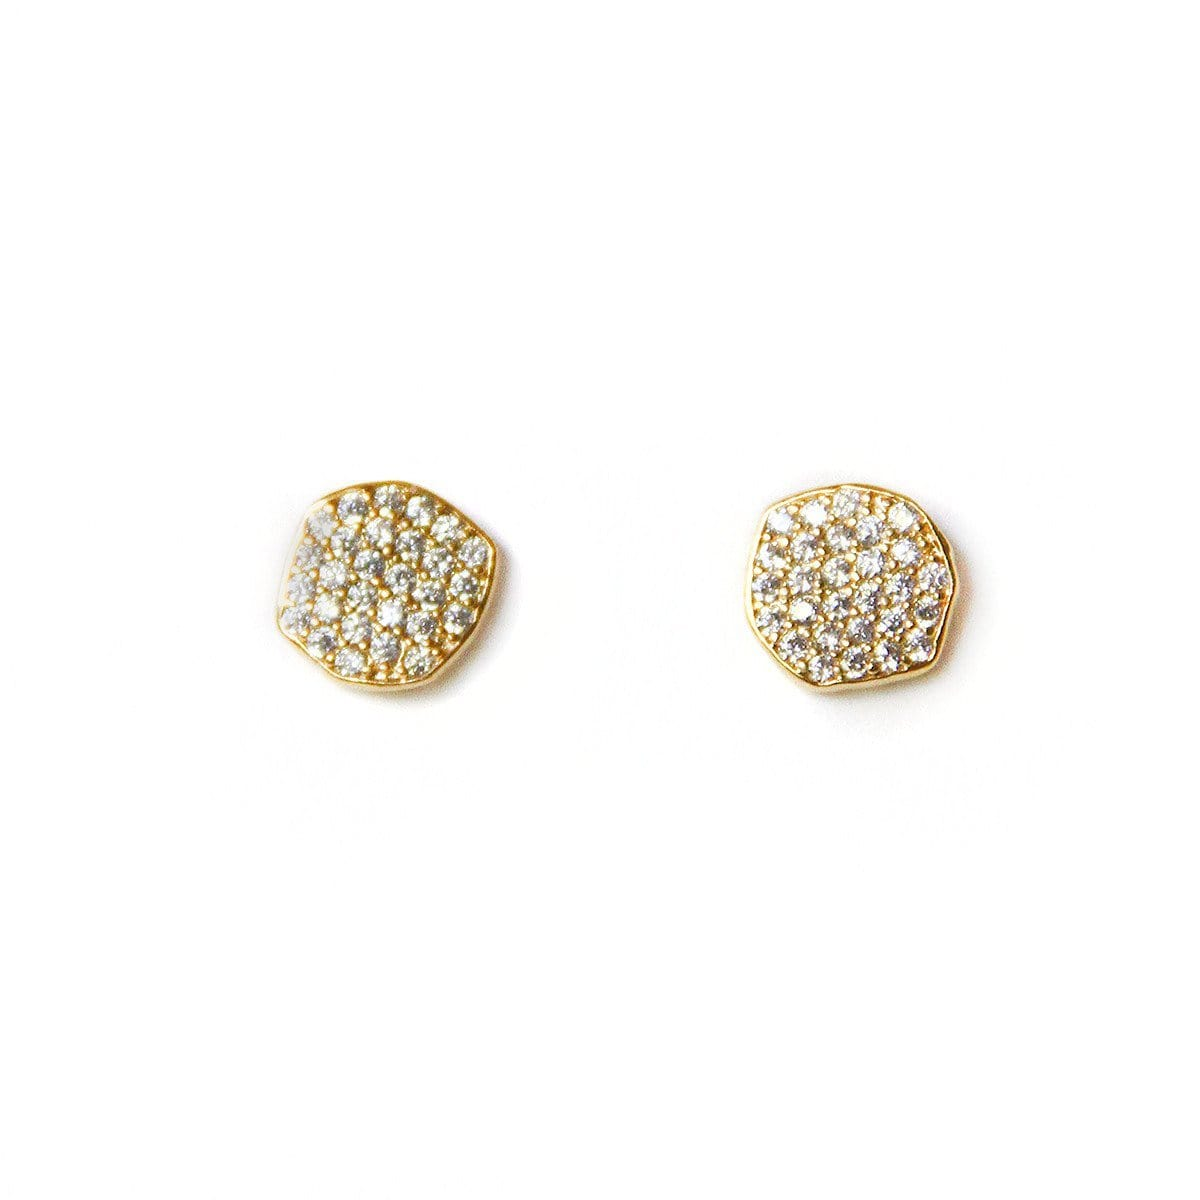 Pave Organic Disc Earrings - Gold